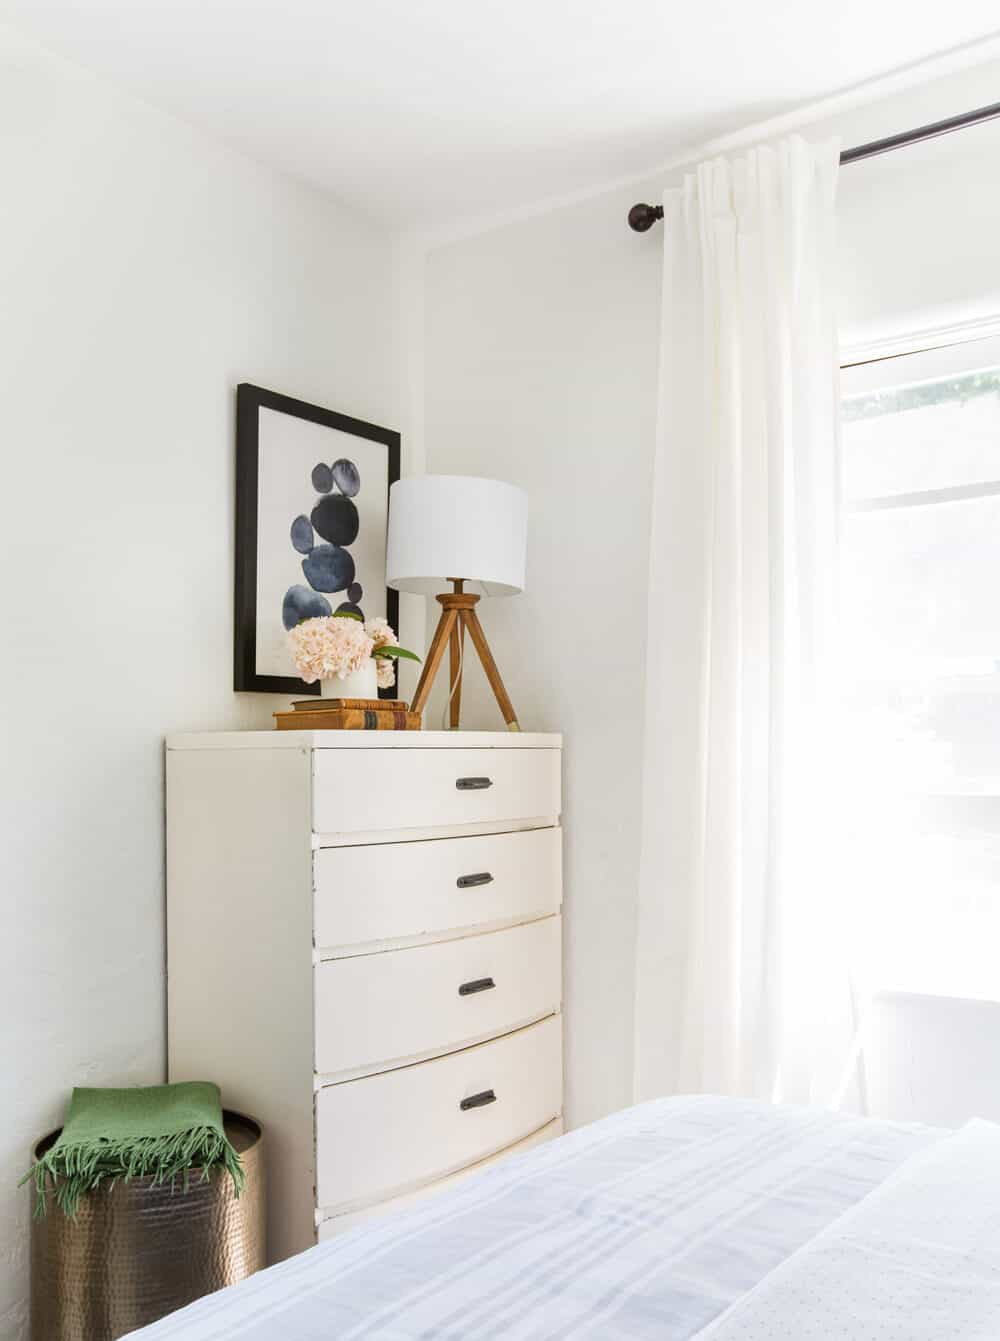 Haiku Fan Guest Bedroom Interior Makeover-4